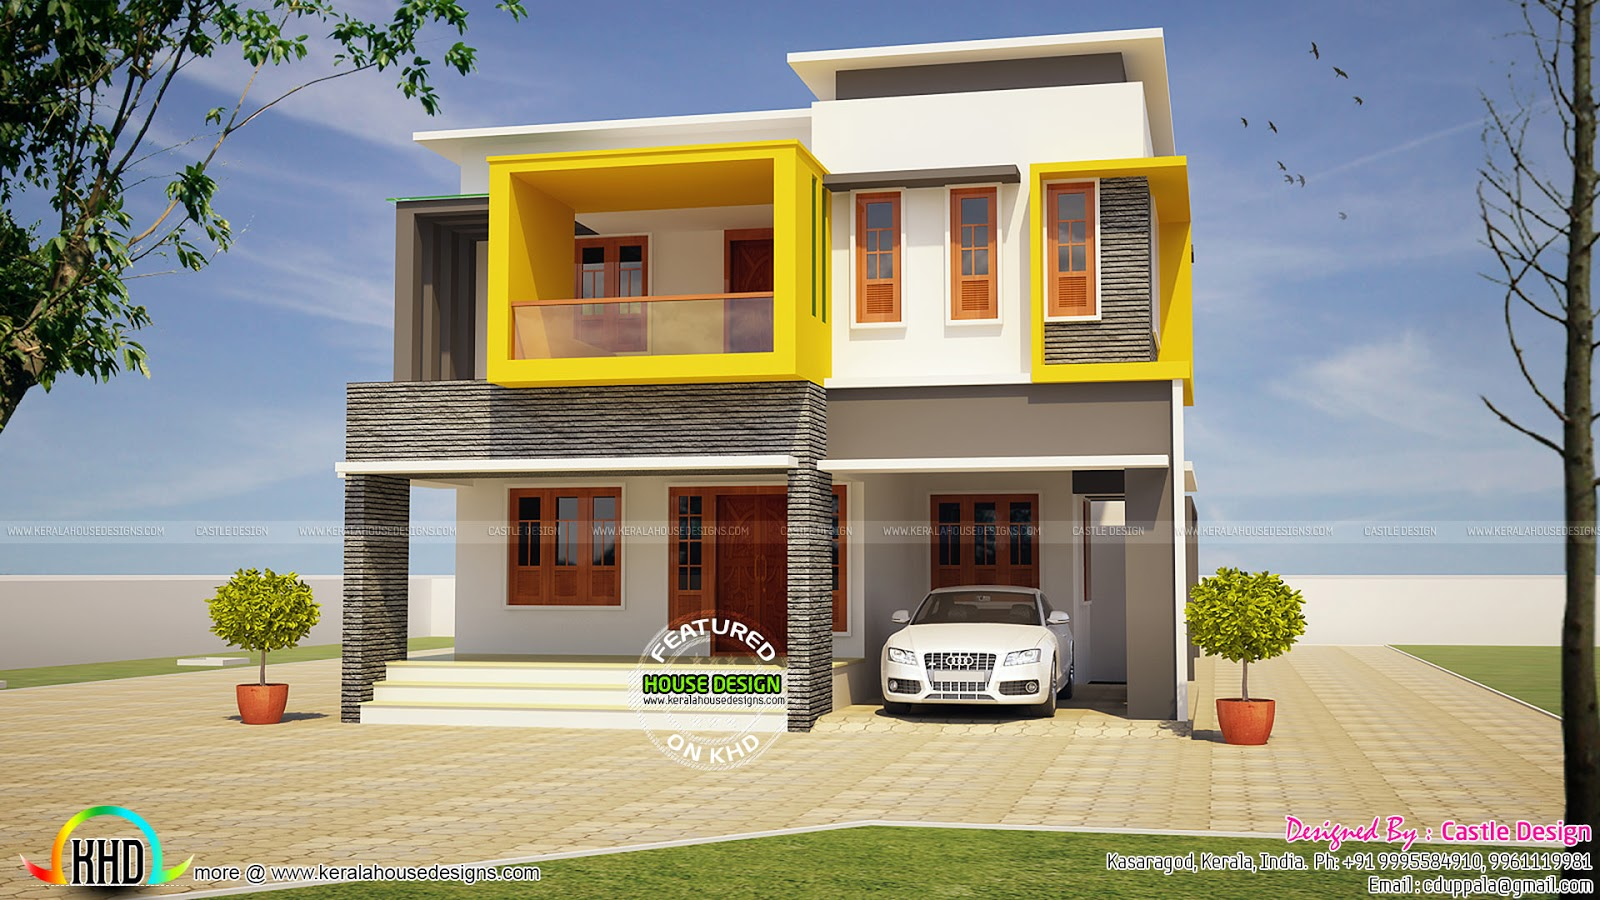 Modern house architecture by castle design kerala home for Castle architecture design